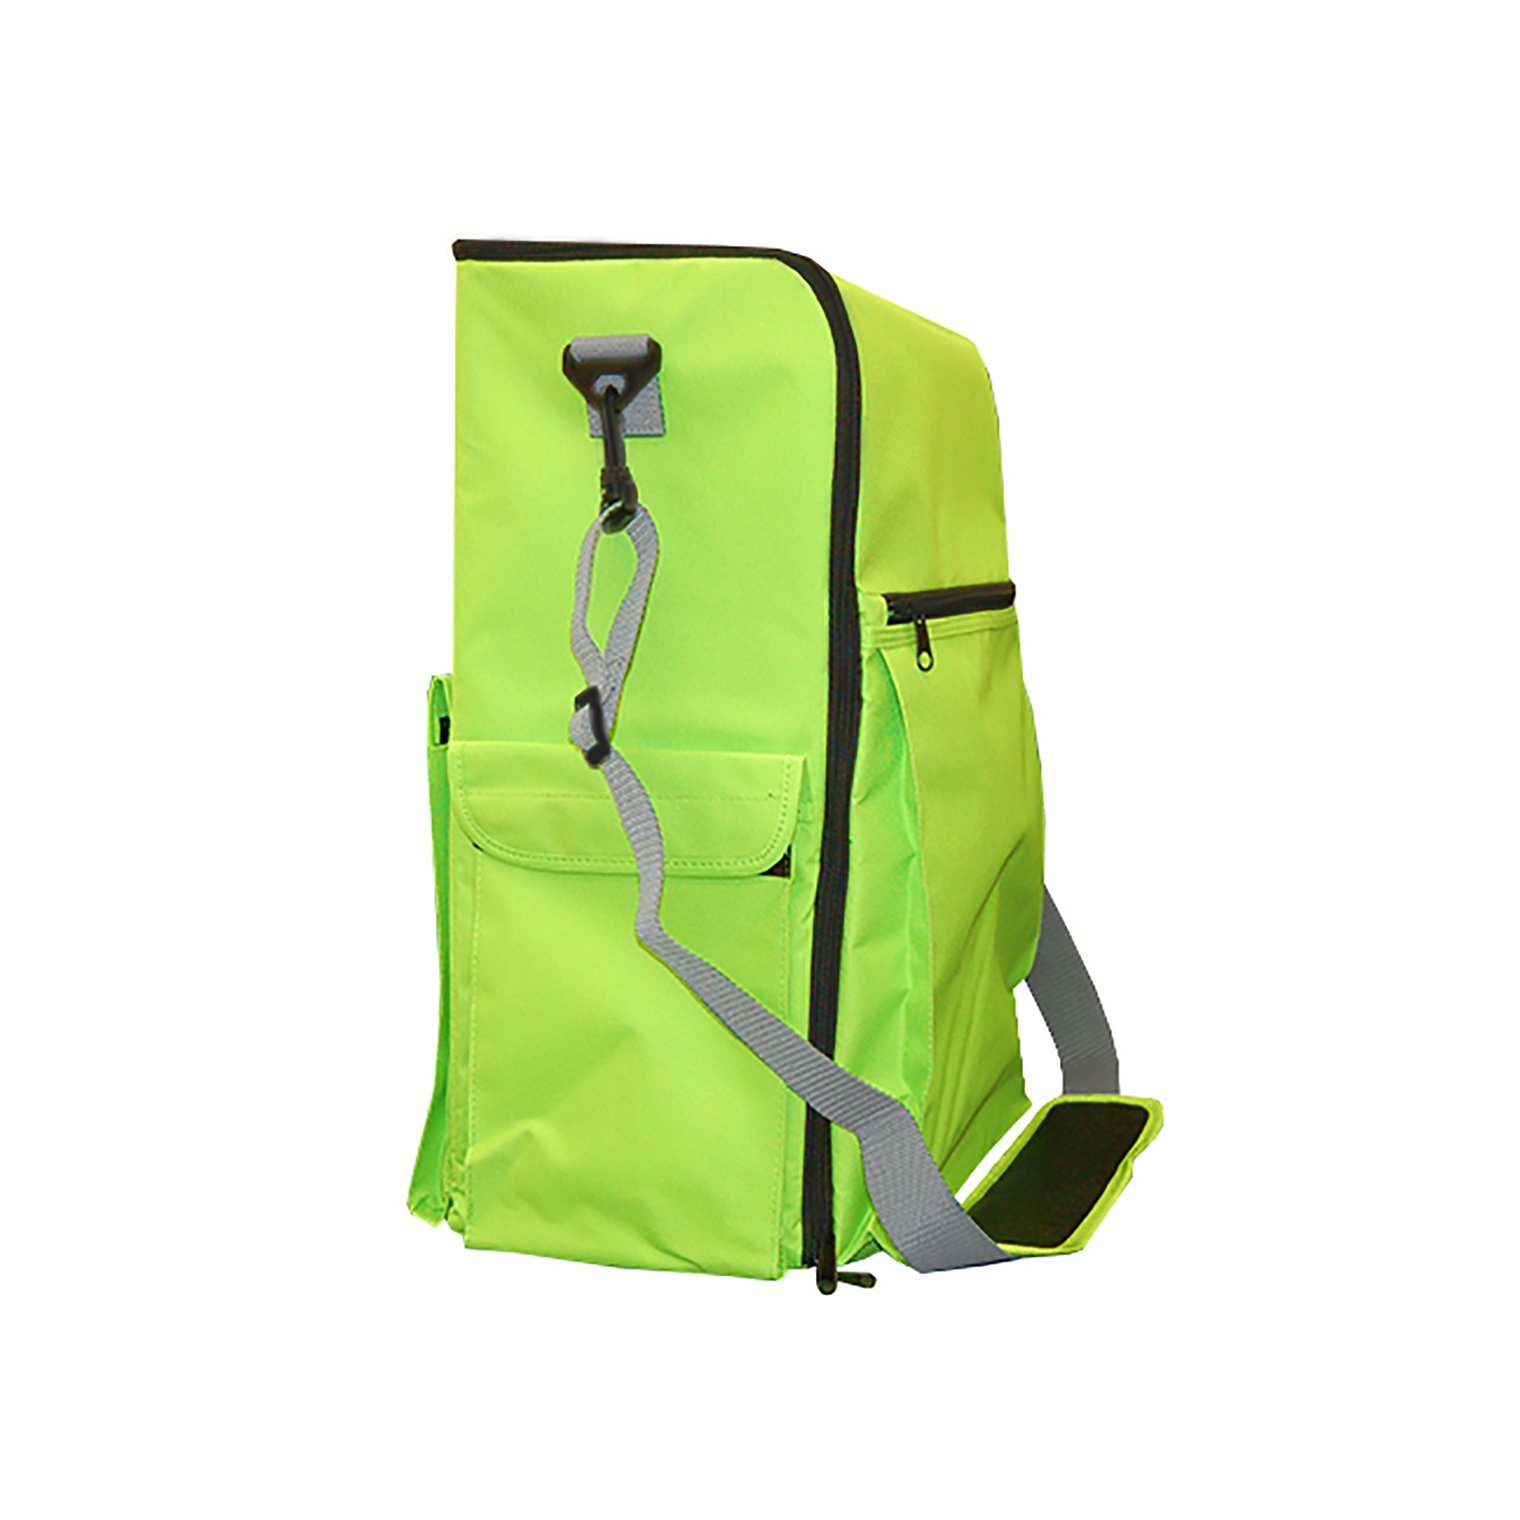 Game Plus Products Miniature Case/Bag, Green